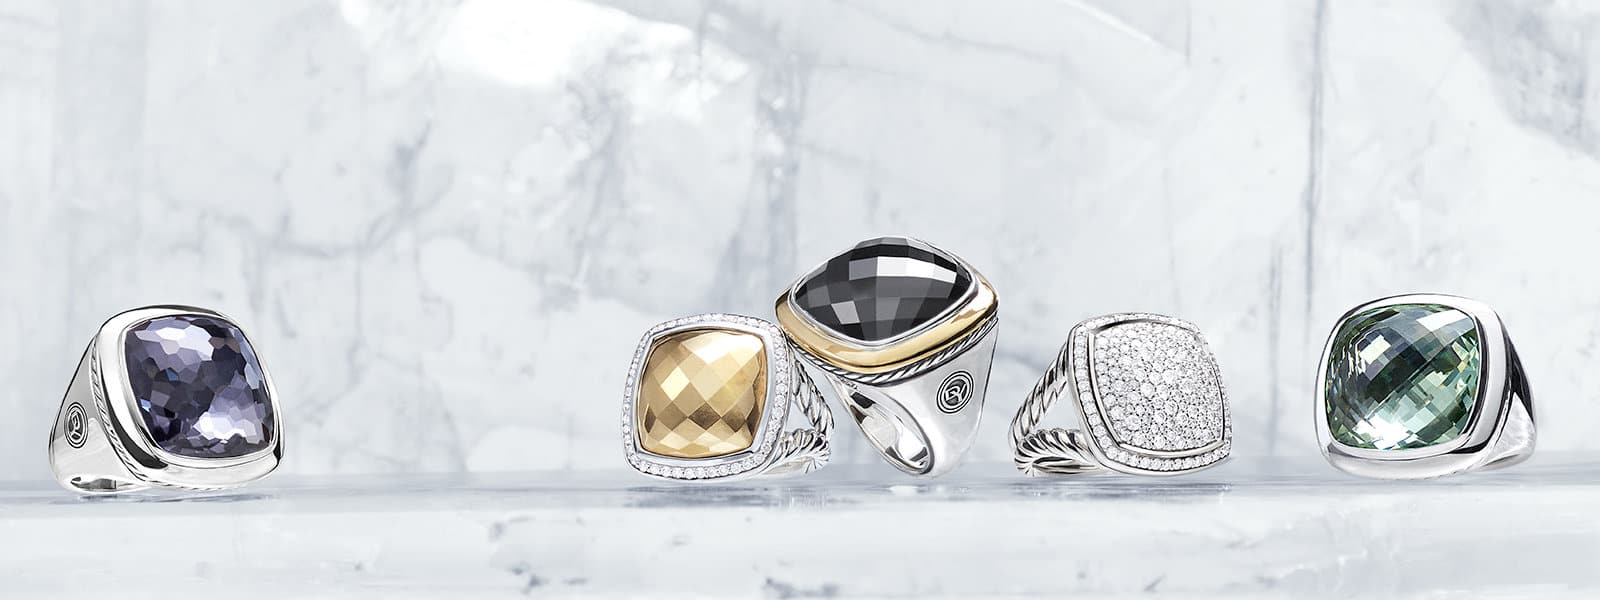 Albion rings in sterling silver with black orchid (lavender amethyst over hematine), bonded gold dome and pavé white diamonds, 18K yellow gold and black onyx, mosaic pavé white diamonds or prasiolite, in a row on ice.